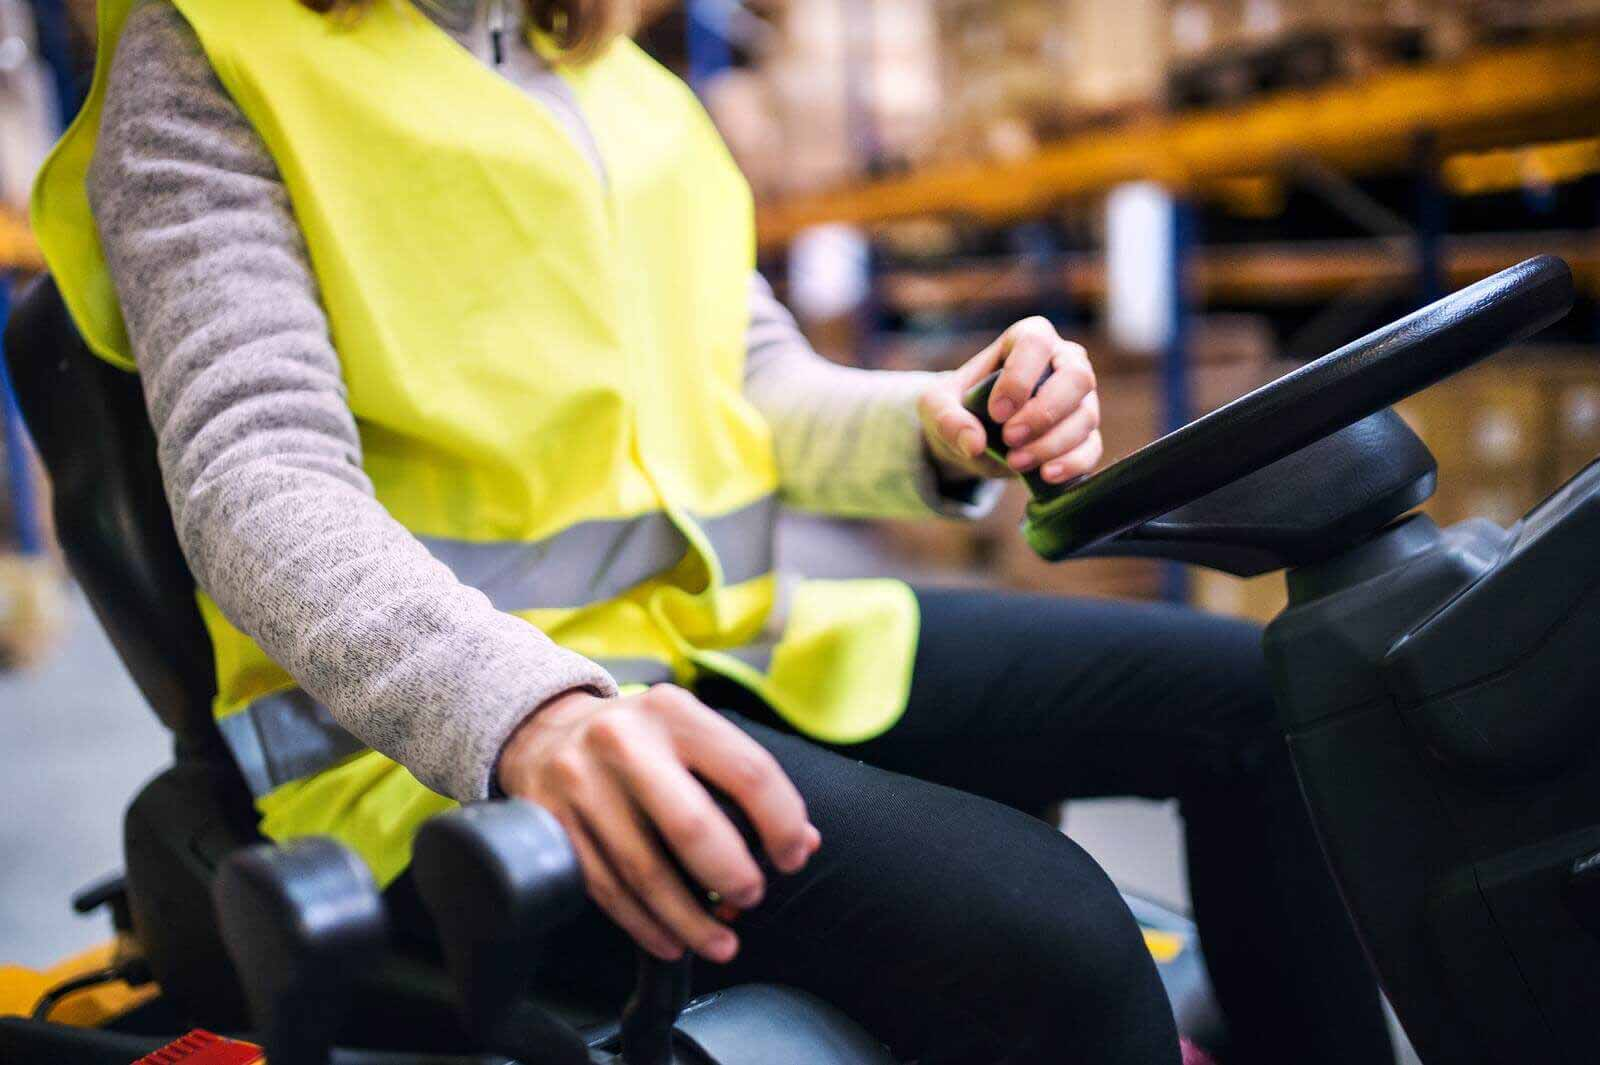 Forklift Safety Requirements: Frequently Asked Questions